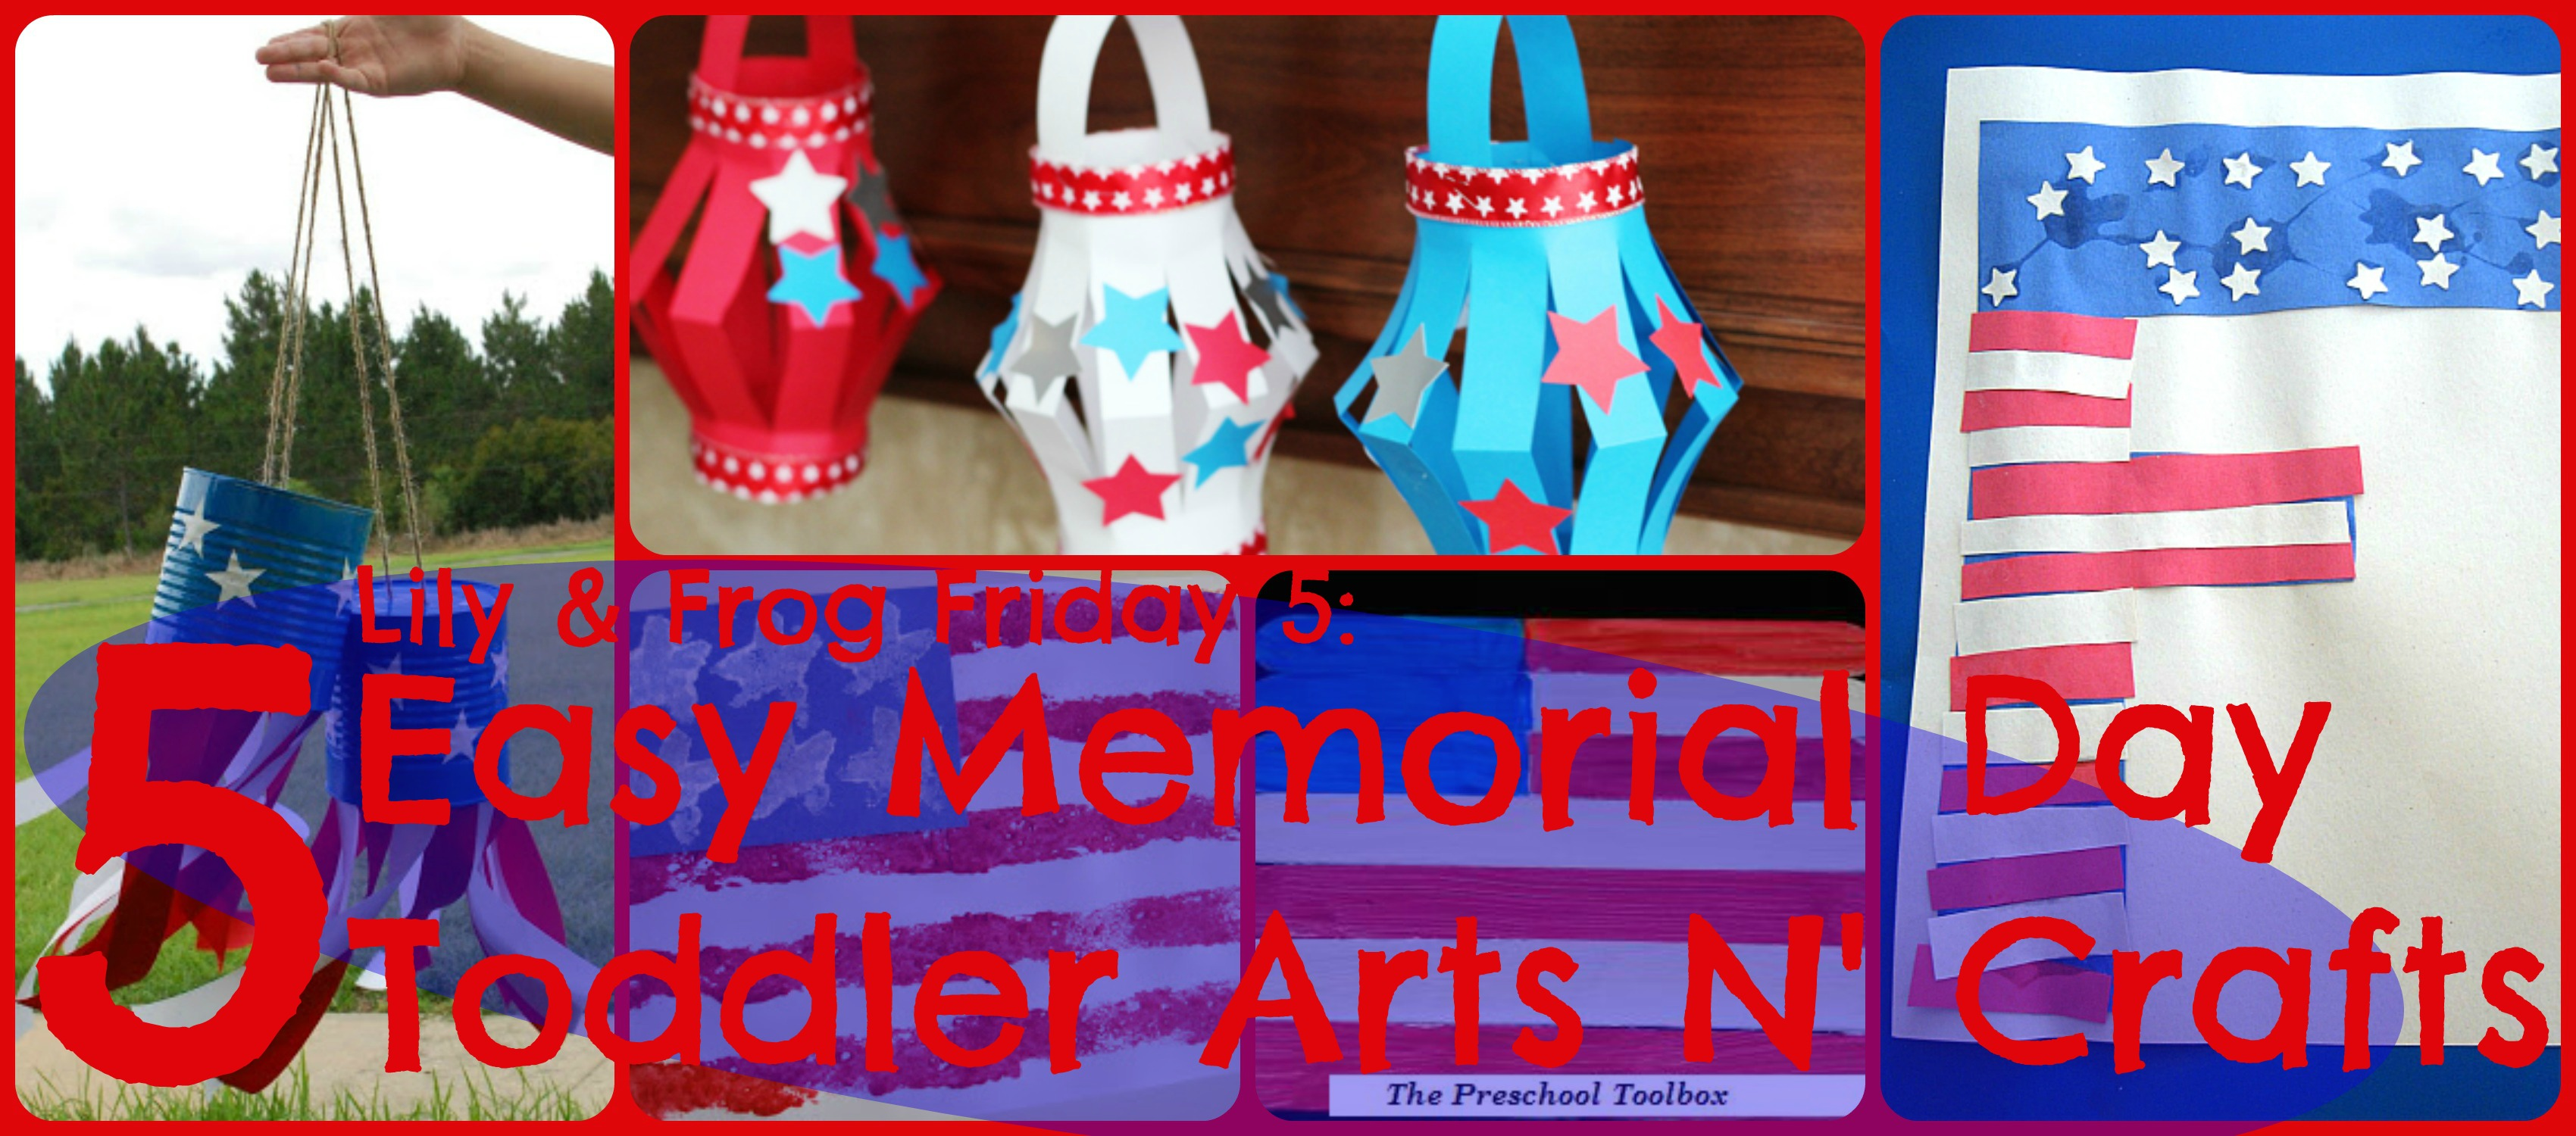 Lily Amp Frog Friday 5 5 Easy Memorial Day Toddler Arts N